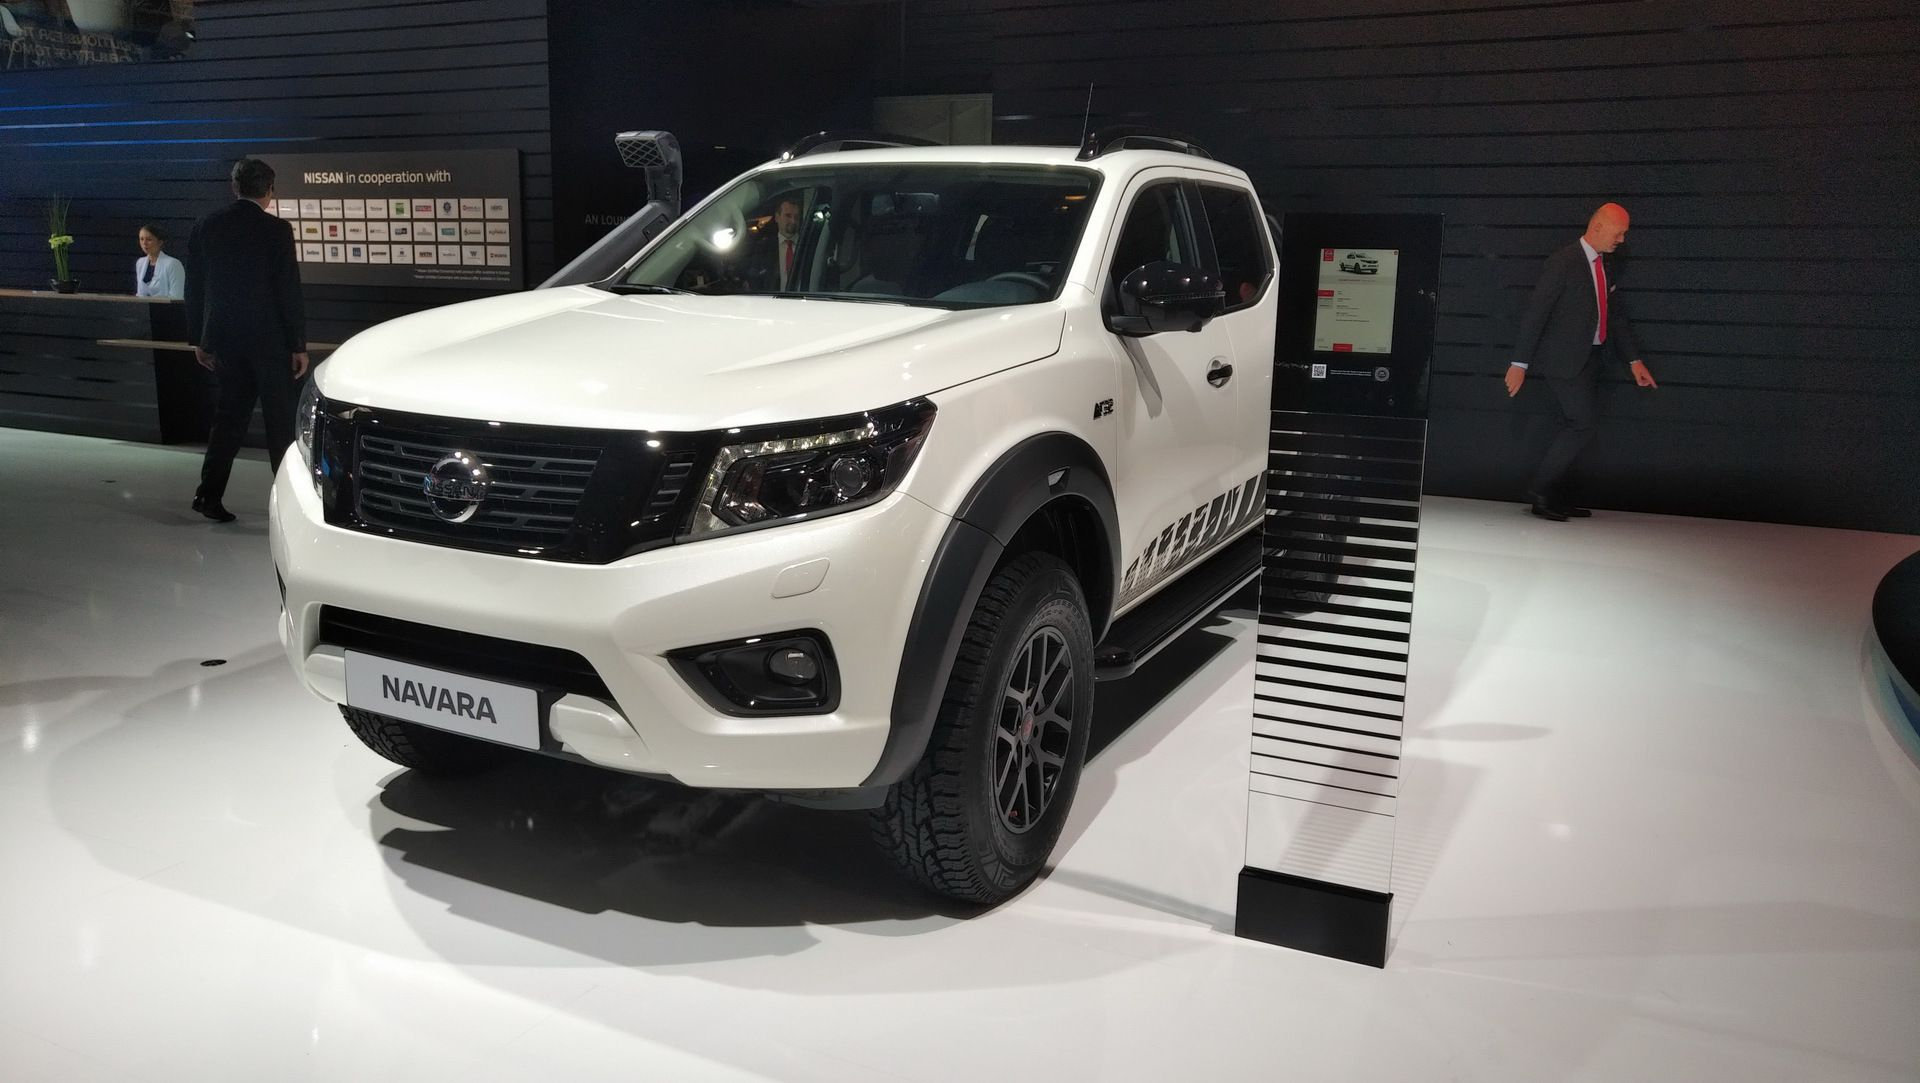 Nissan Navara N Guard Touches Down In Hannover Wearing